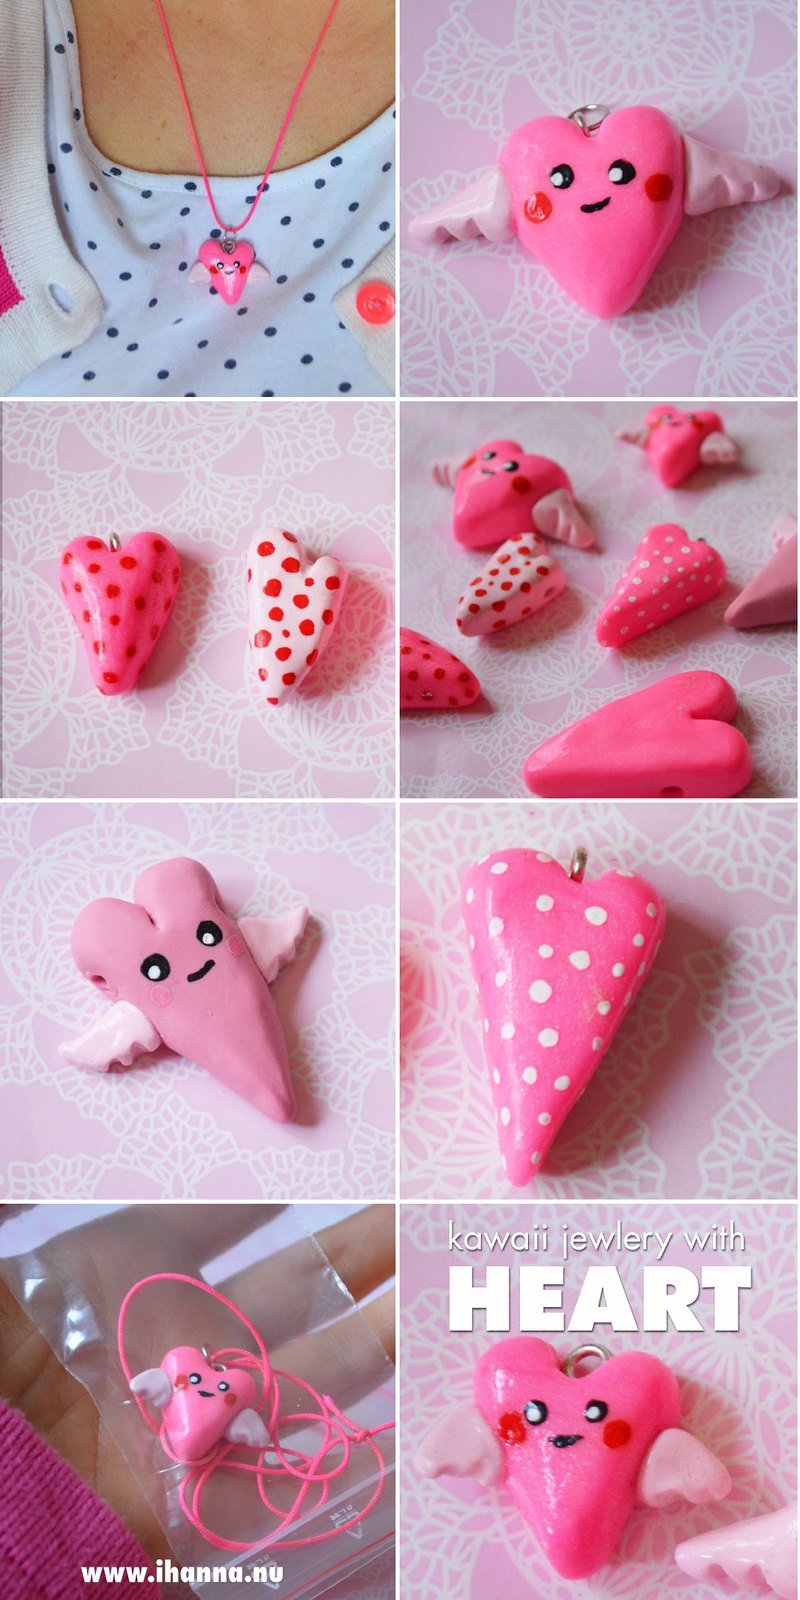 Kawaii Hearts made by iHanna